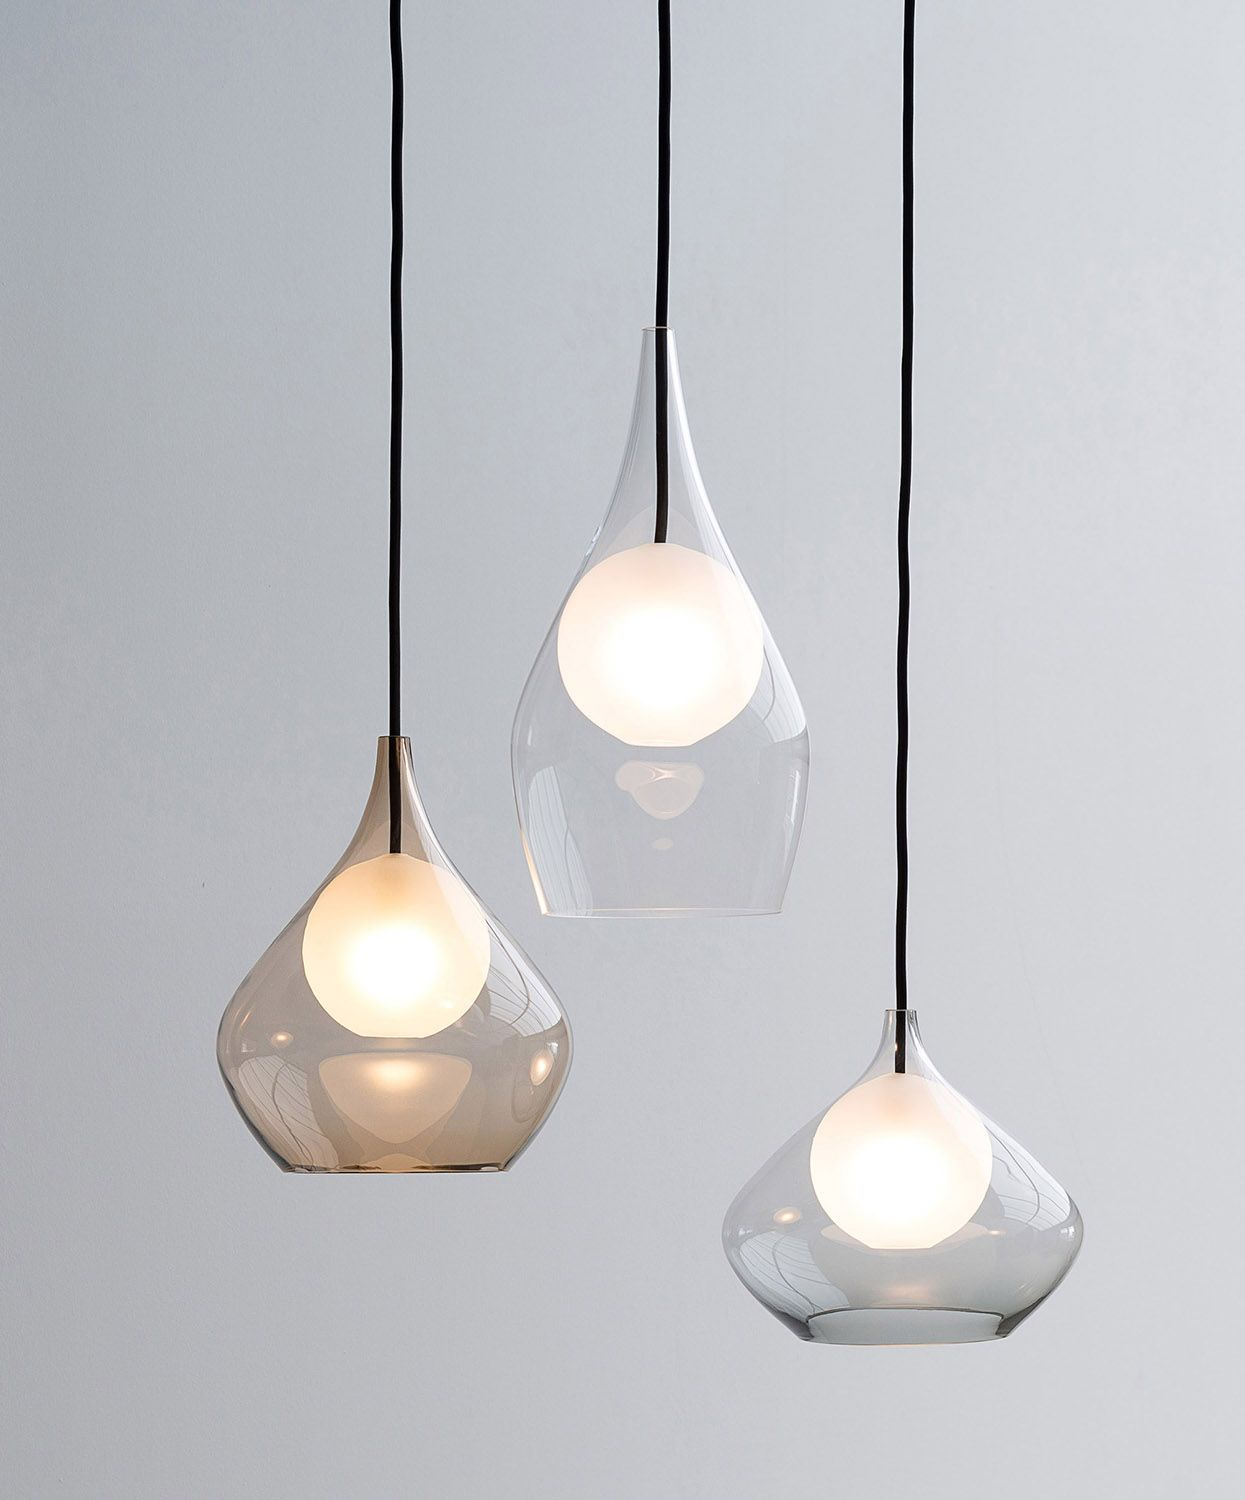 Next shade pendant isabel hamm licht lamps next shade pendant isabel hamm licht more aloadofball Images